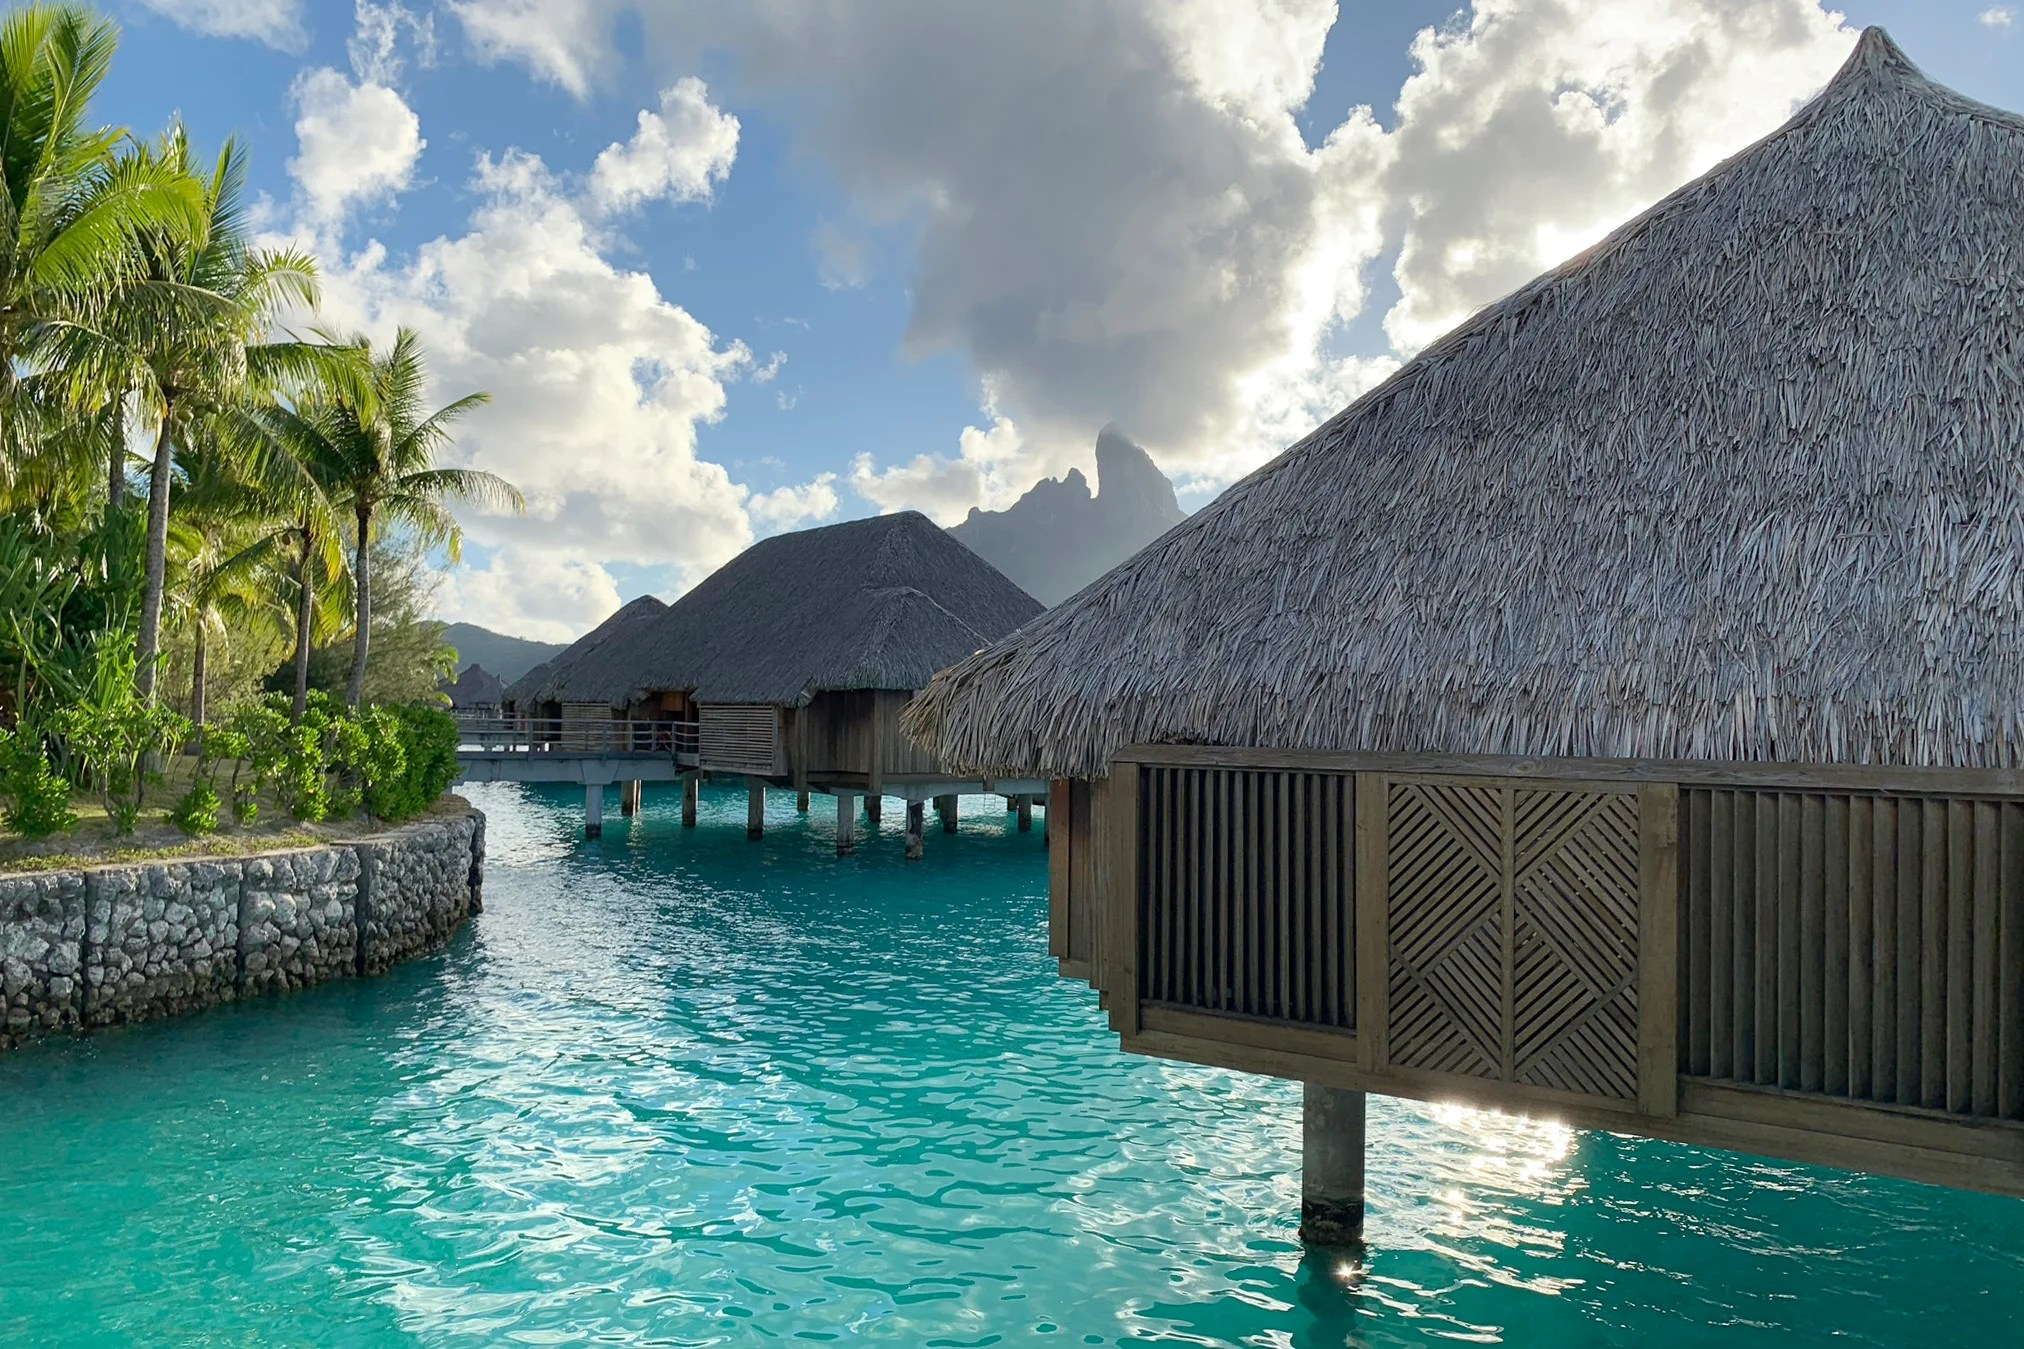 IMG 4449 - TPG beginner's guide to planning a honeymoon of a lifetime